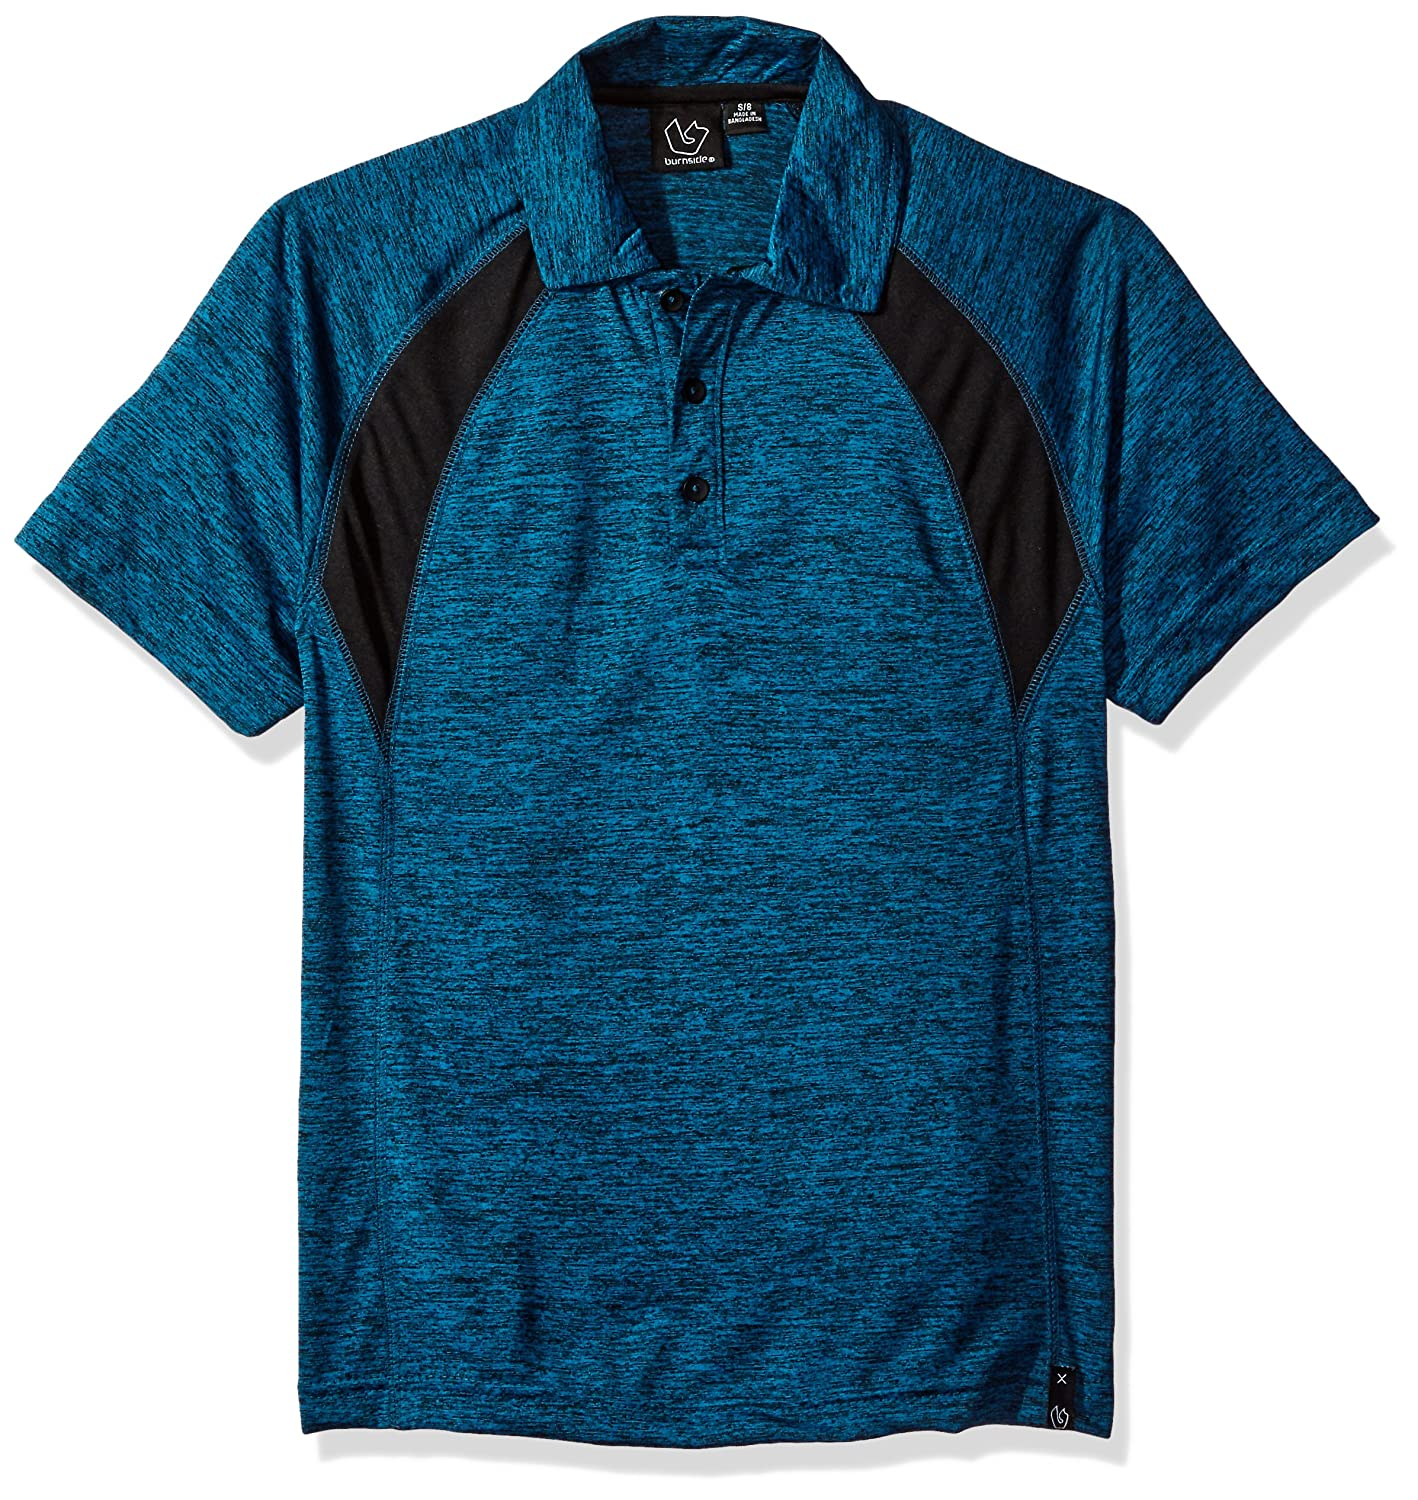 Burnside Boys Big Boom Performace Tech Polo Shirt